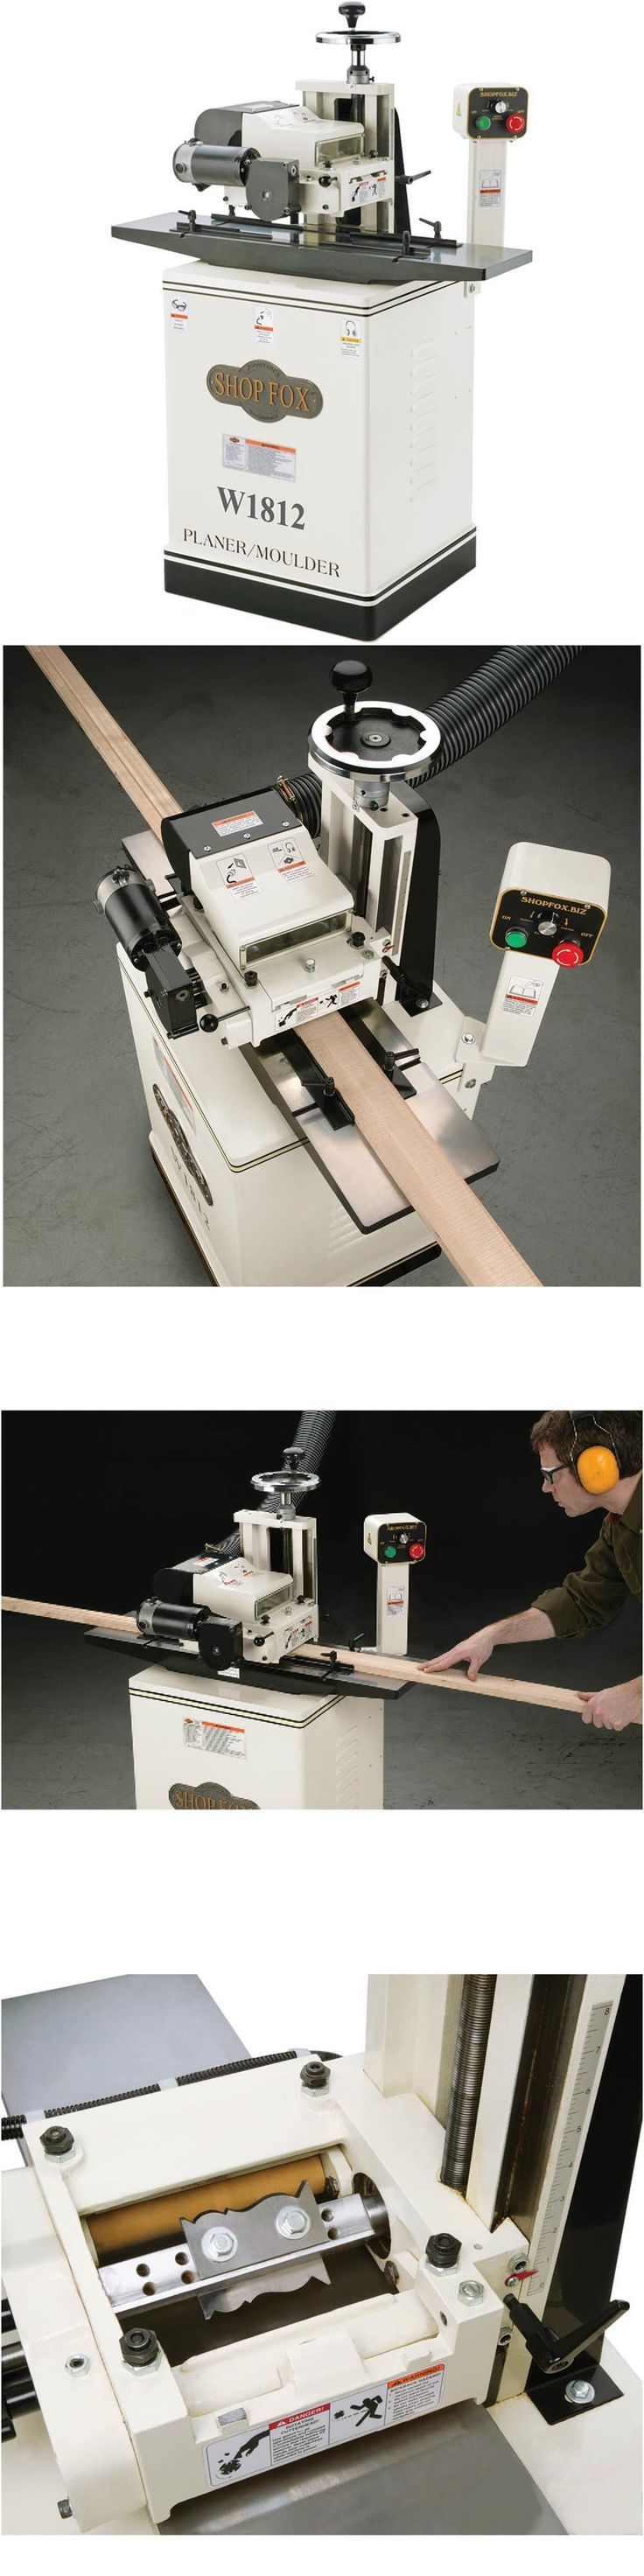 Tools 40 102 promax cast iron router table extension free shipping - Router Tables 75680 Shop Fox W1812 2 Hp 7 Planer Moulder With Stand